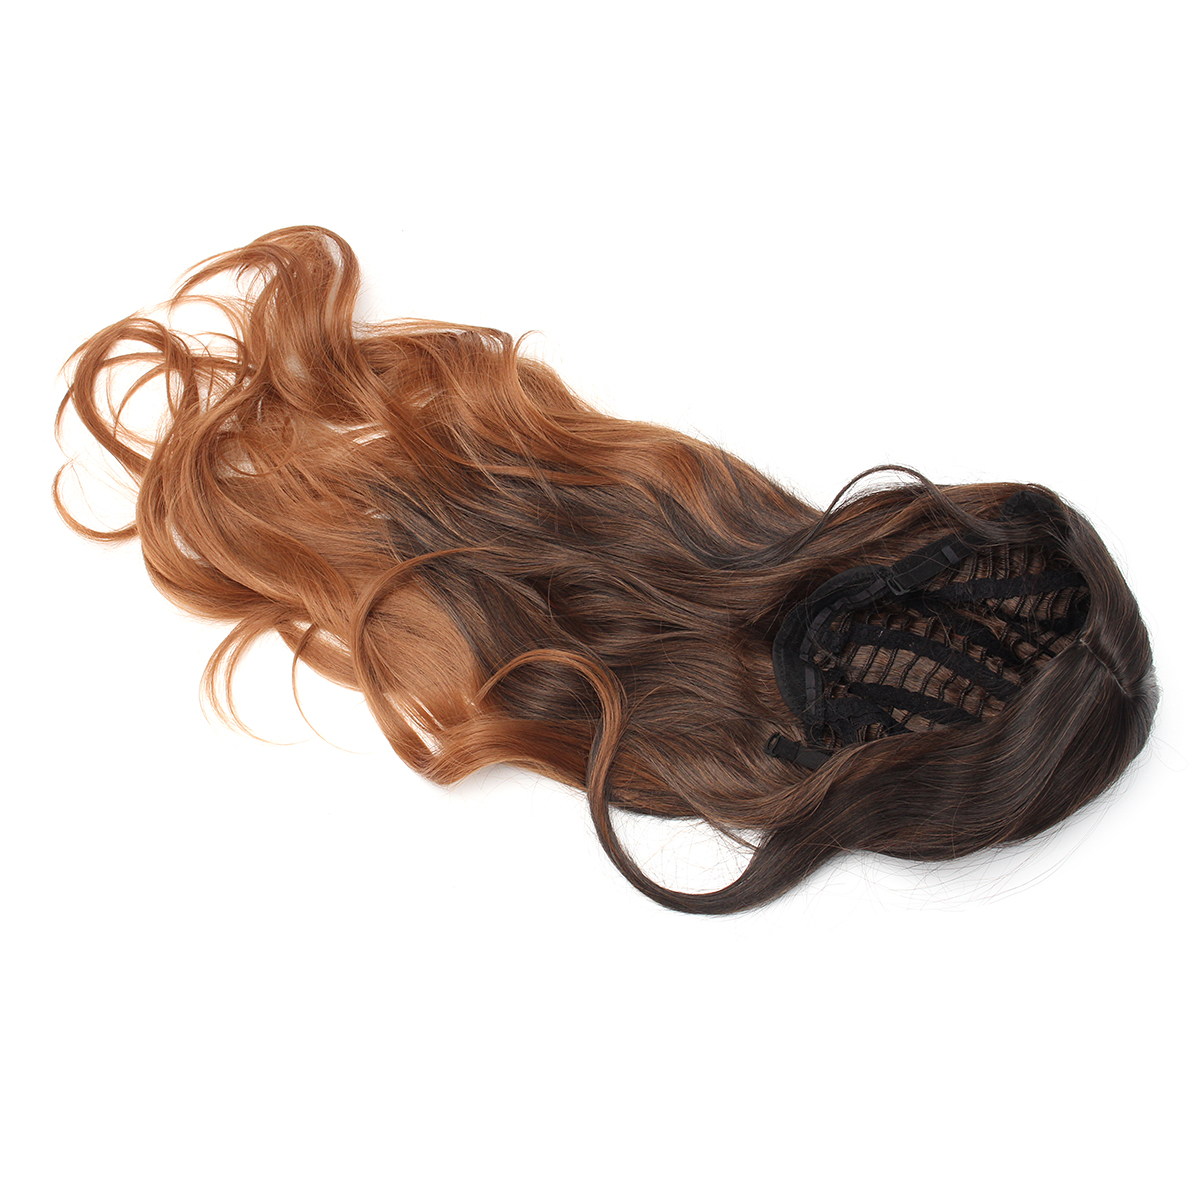 Women's Long Wavy Curly Hair Cosplay Party Wig